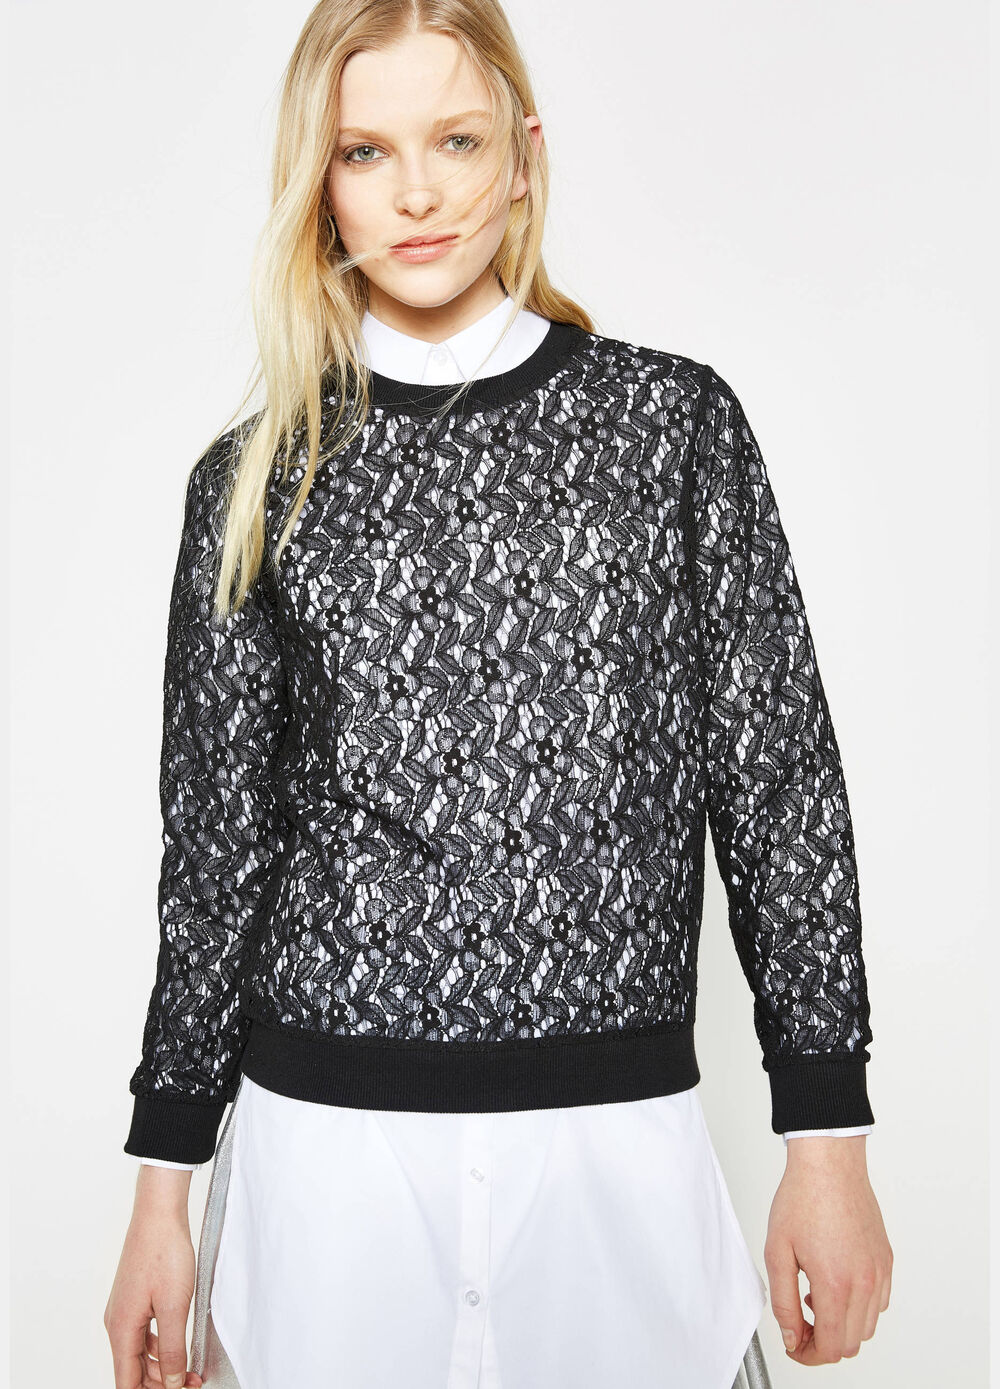 Crew-neck sweatshirt in semi-sheer lace